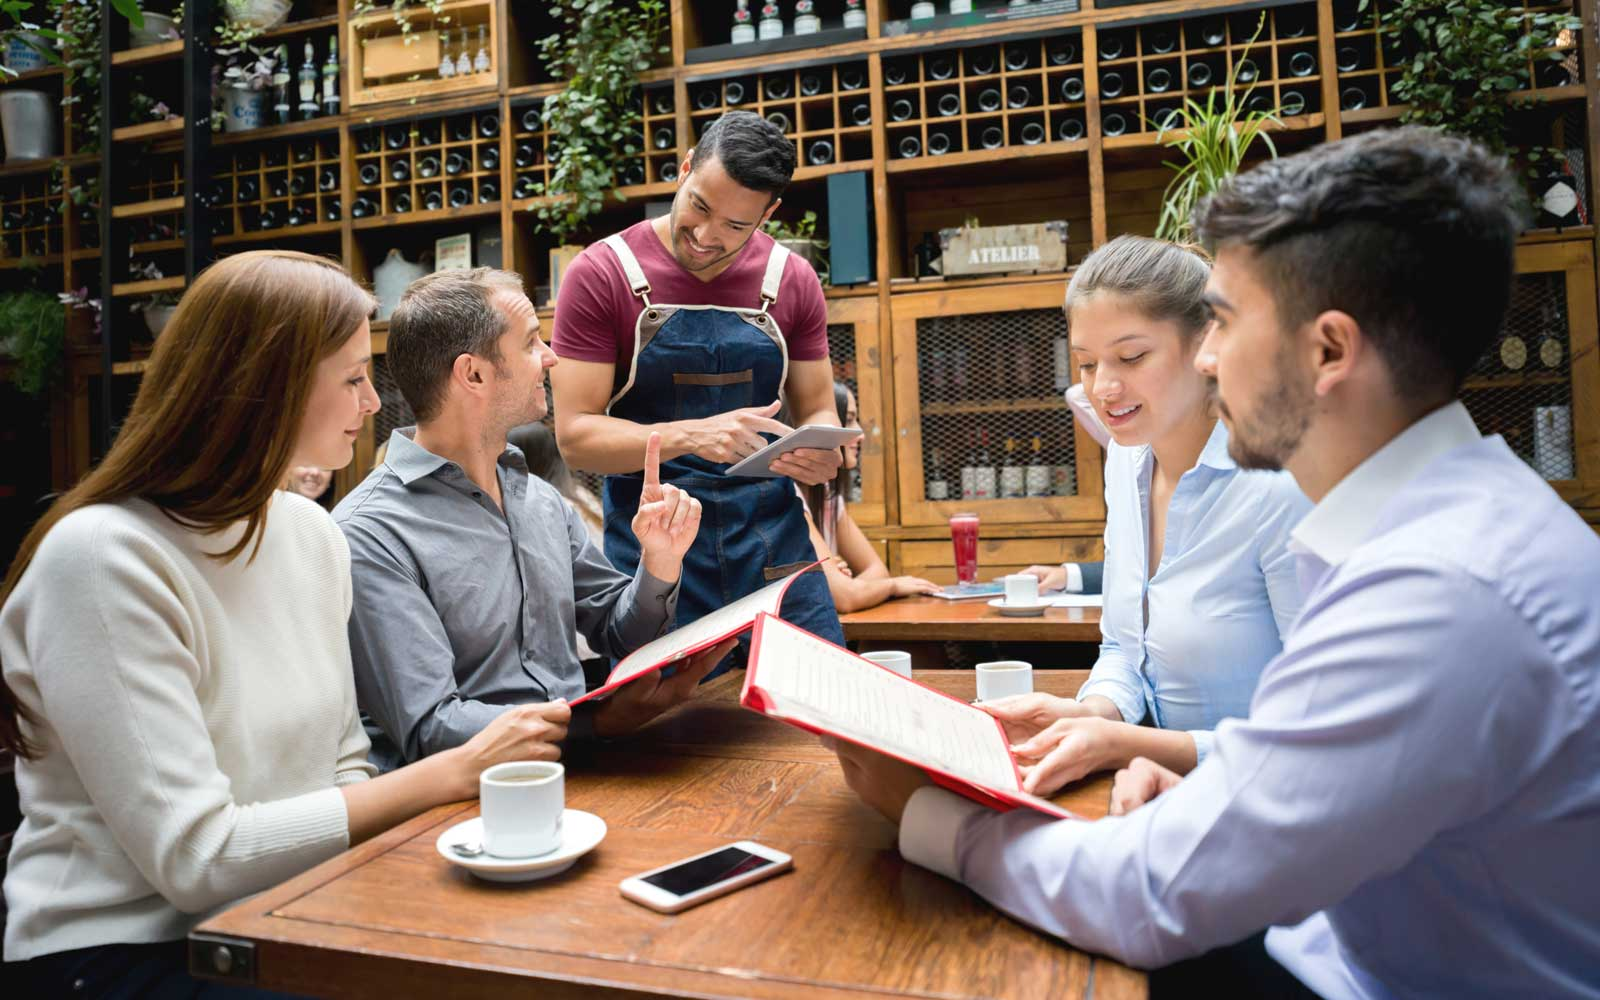 Waiter taking order to a group at a restaurant using a tablet